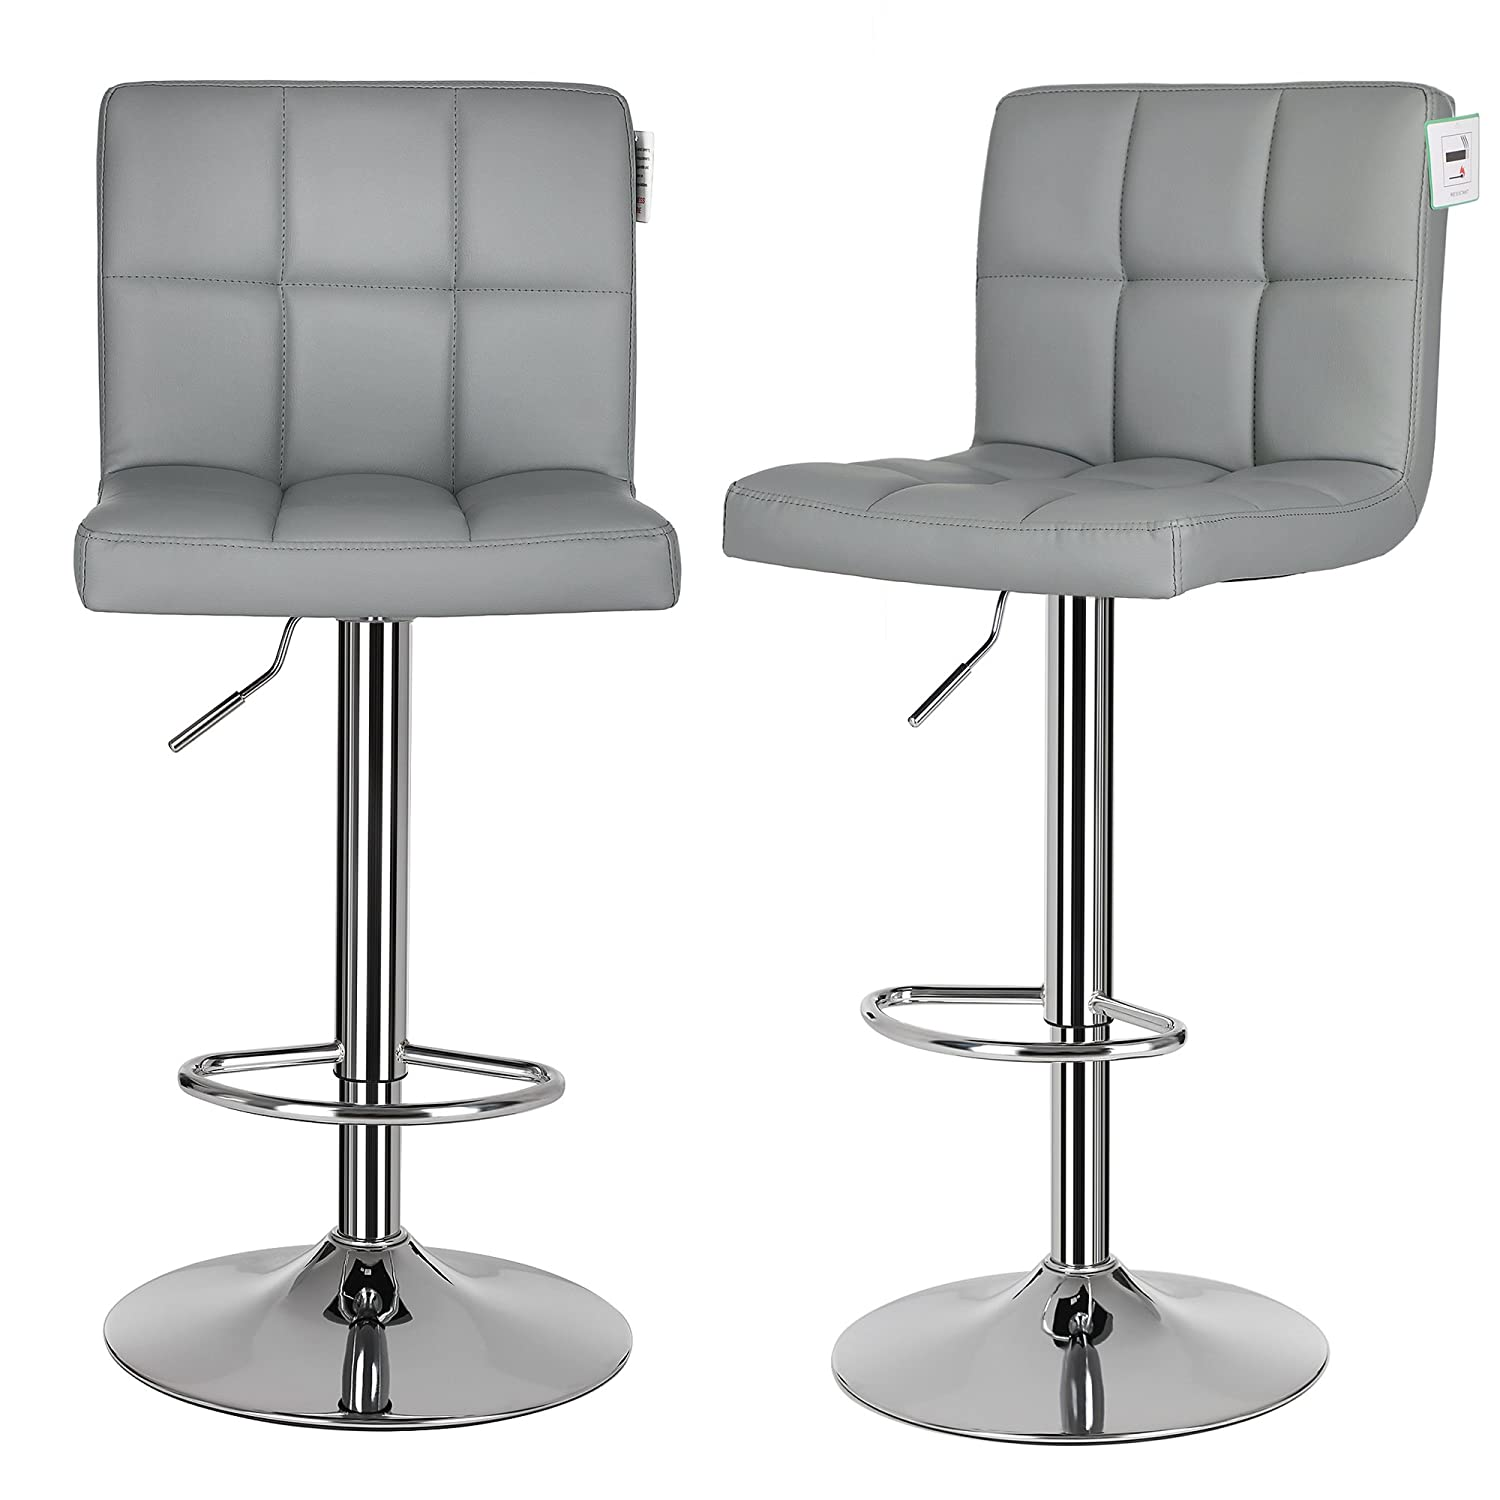 SONGMICS 2 x Bar Stools, Bar Chairs Set with Backrest, Large Seats